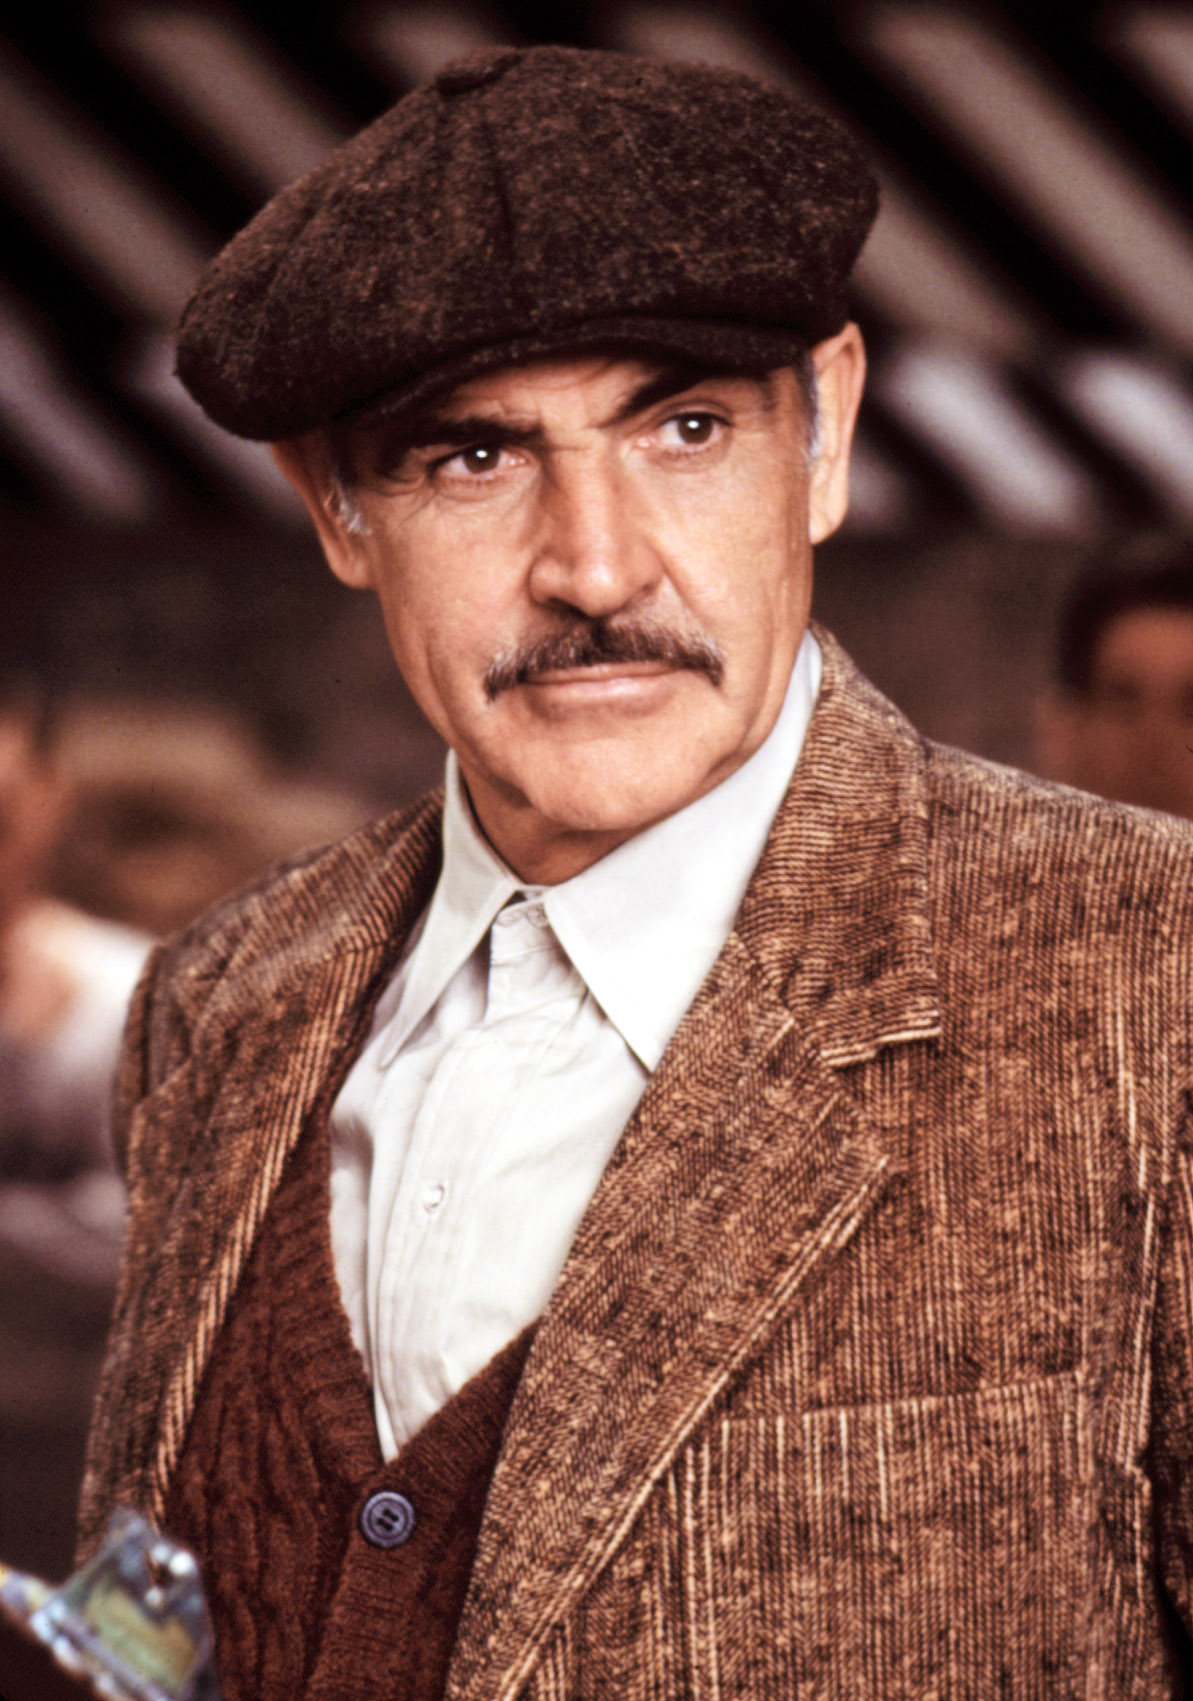 THE UNTOUCHABLES, Sean Connery, 1987. (c) Paramount Pictures/ Courtesy: Everett Collection.